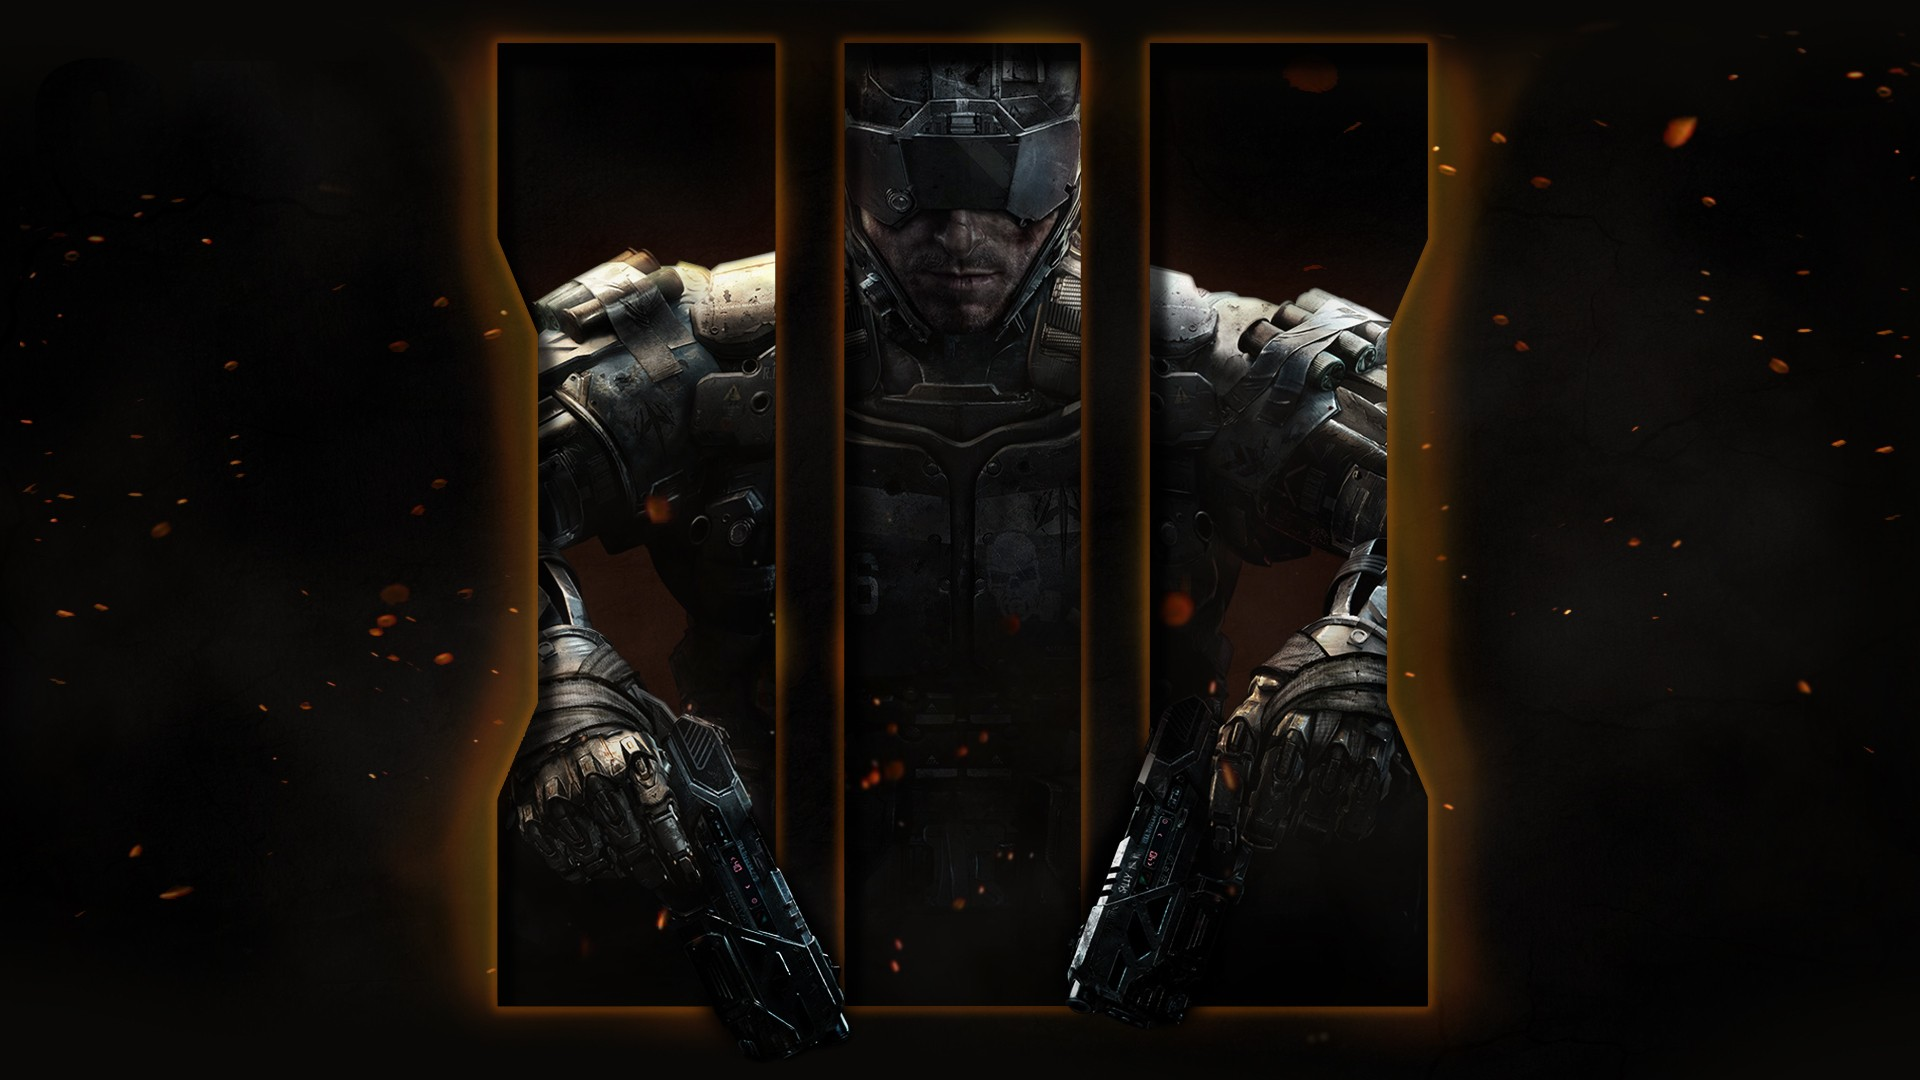 Bo3 Background Download Free Amazing Wallpapers For Desktop